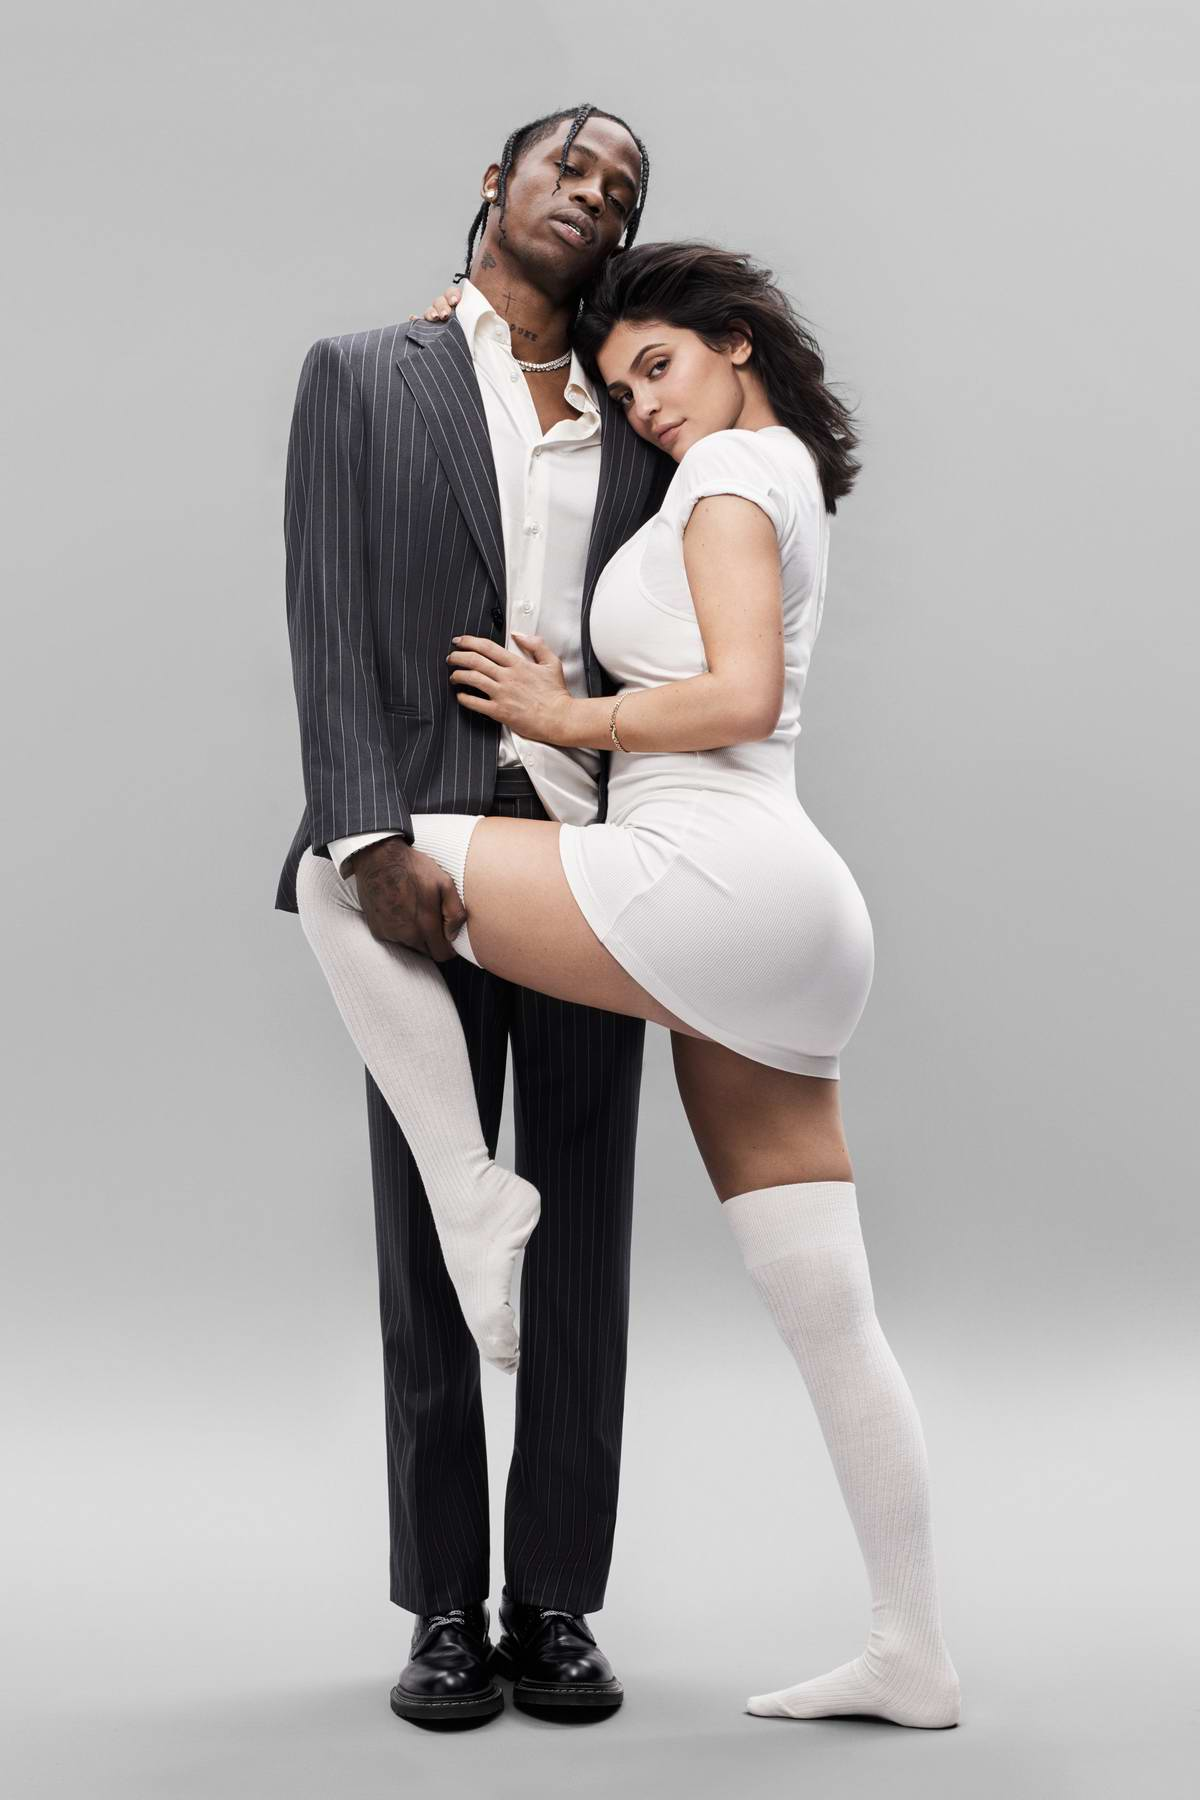 Kylie Jenner and Travis Scott photo shoot for GQ Magazine, August 2018